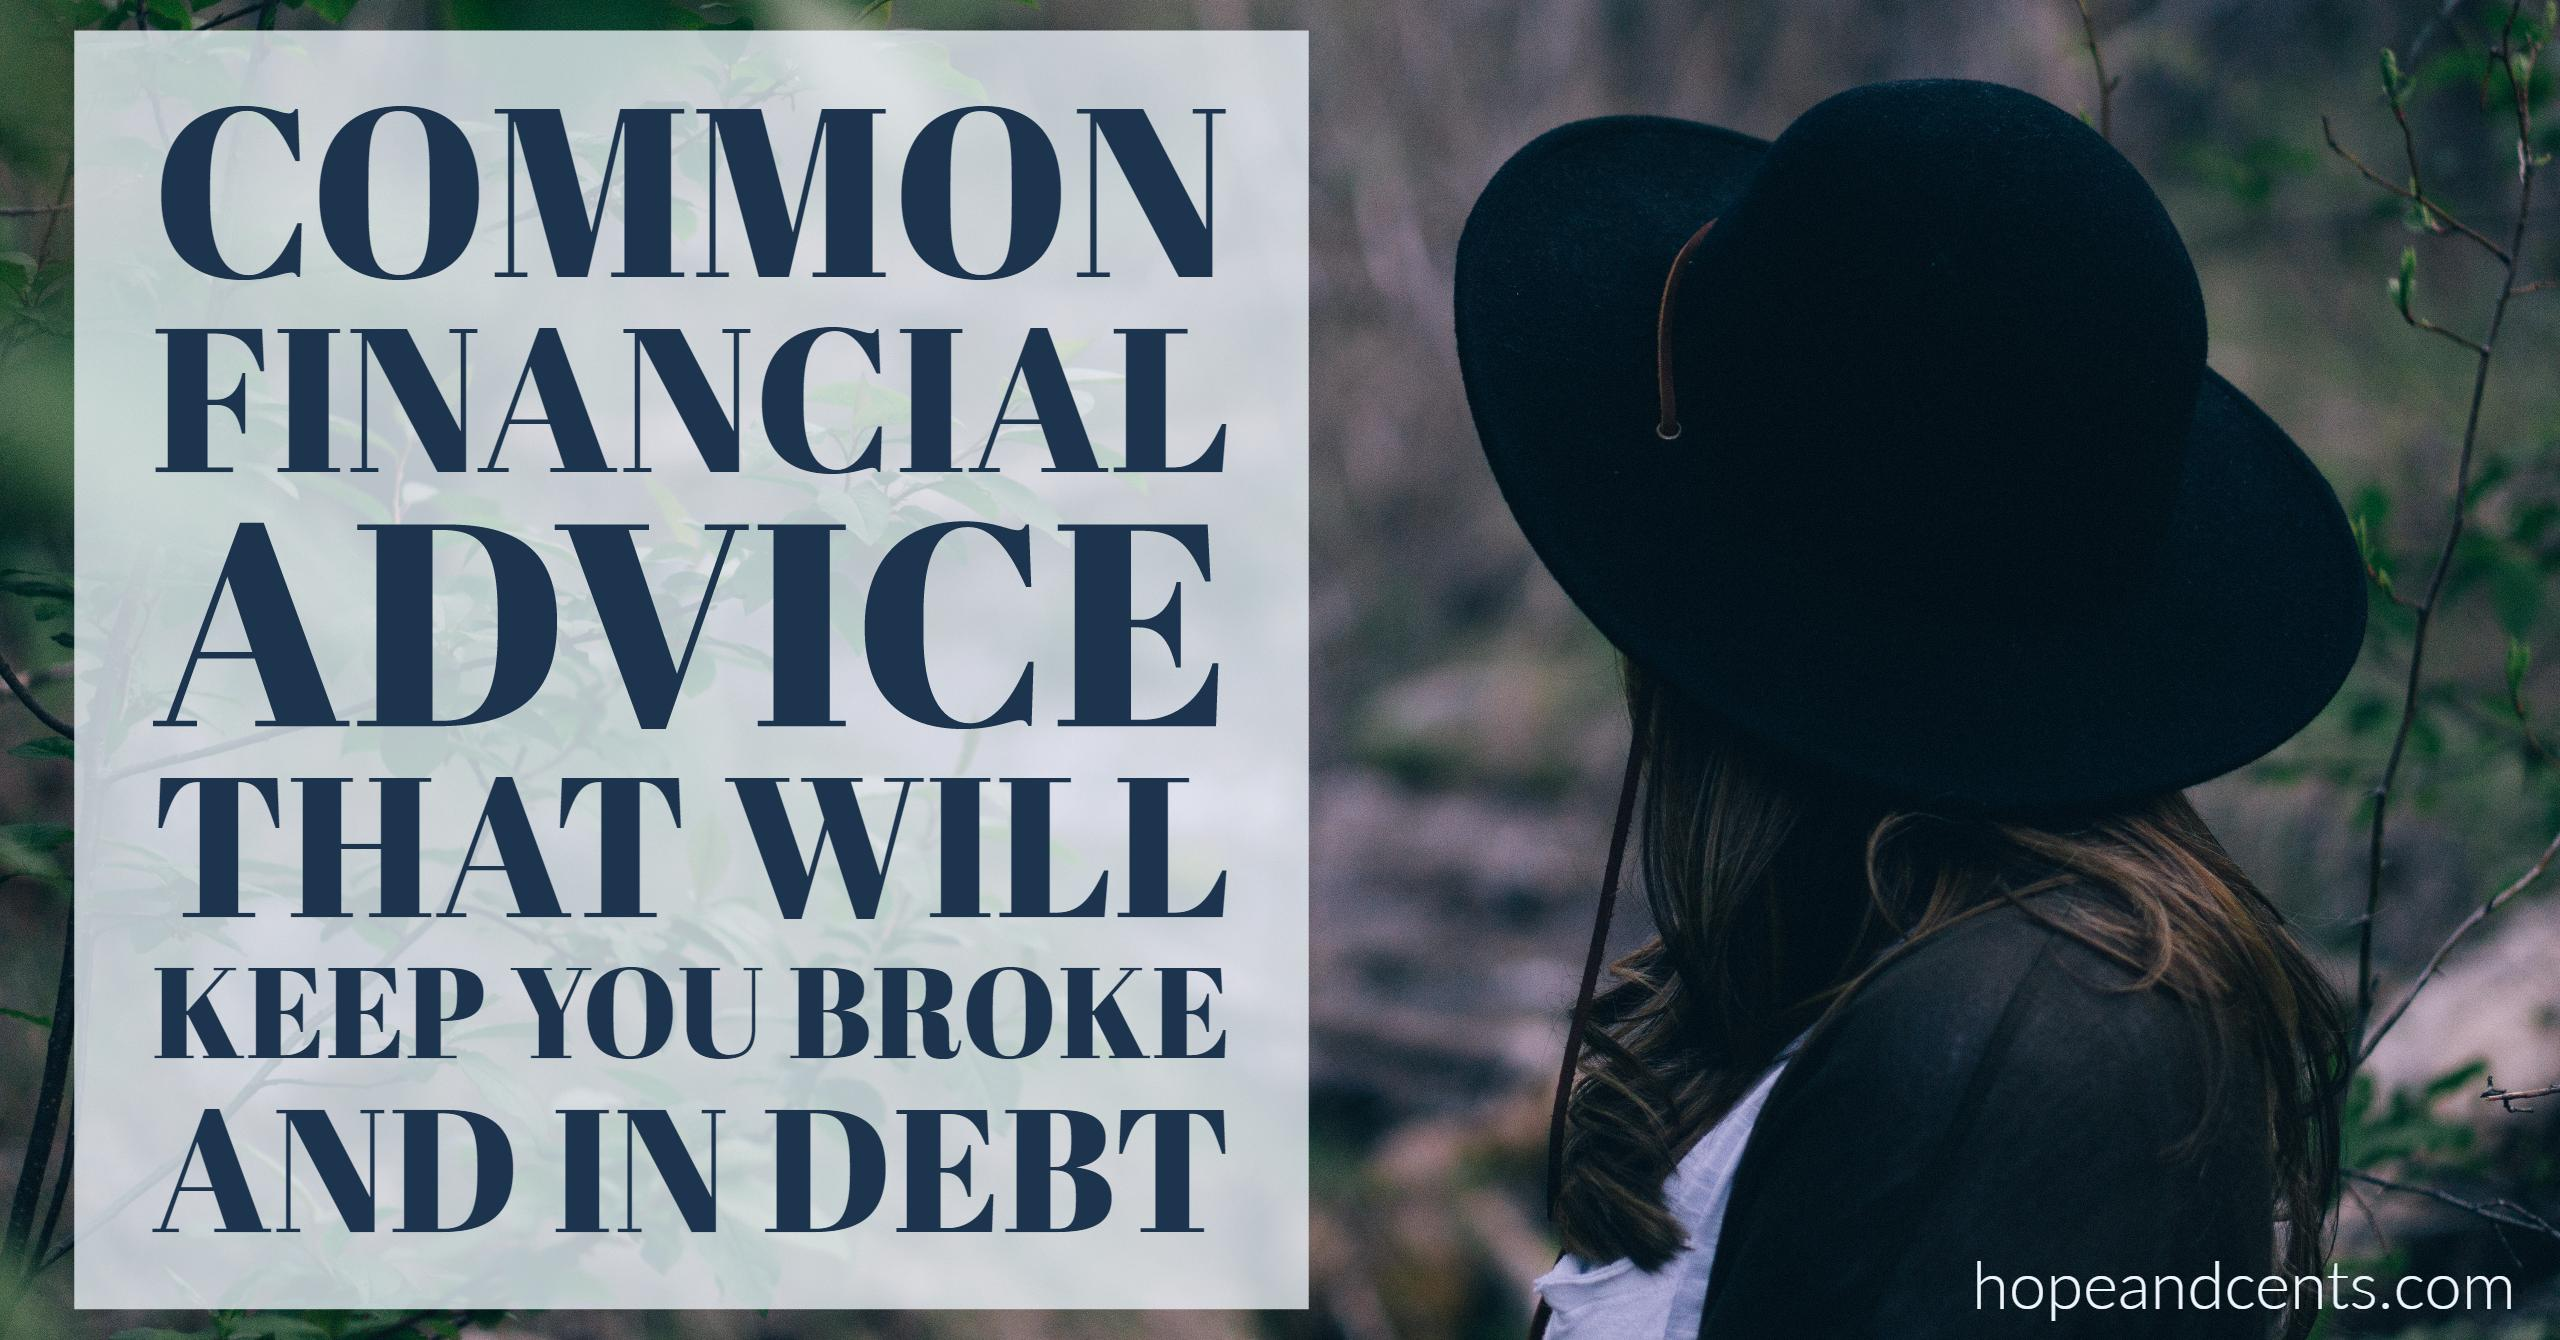 Common Financial Advice That Will Keep You Broke And In